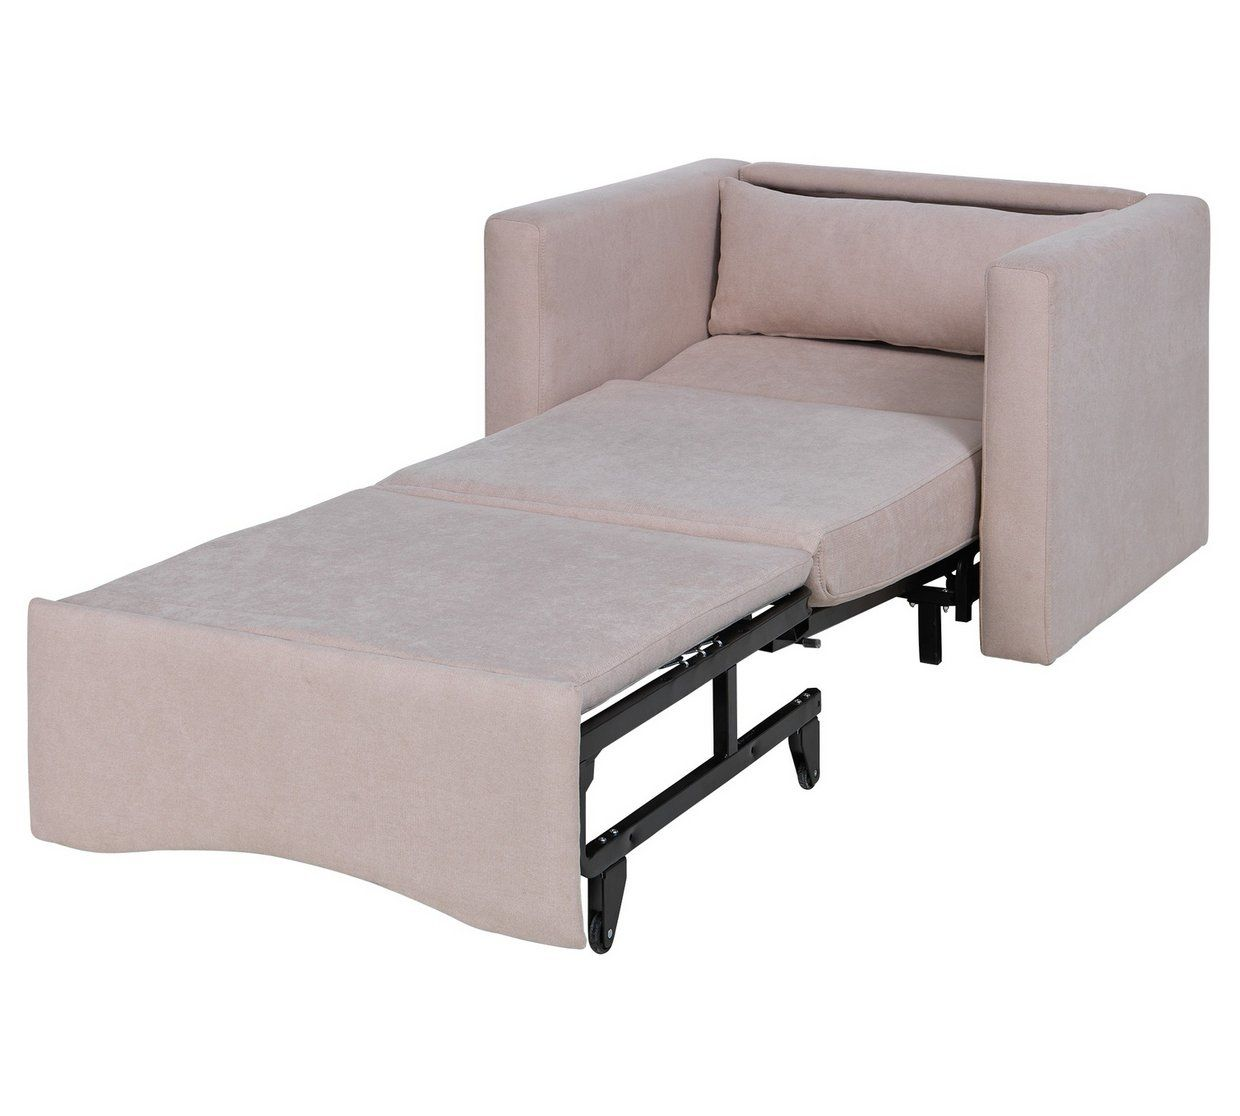 Buy Home Reagan Fabric Chairbed Natural Sofa Beds Chairbeds And Futons Argos Sofa Bed Chair Bed Natural Sofas